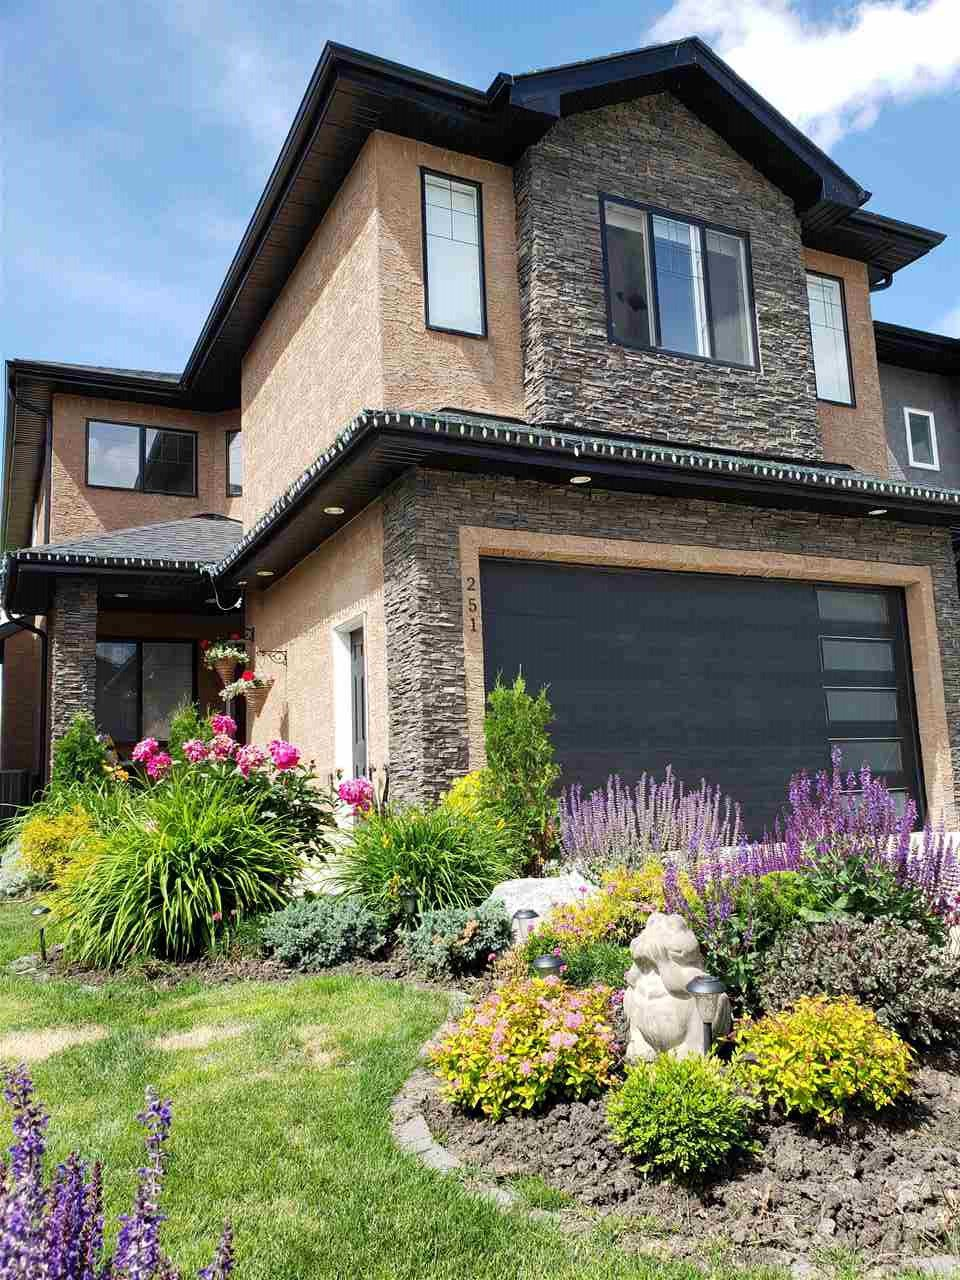 Main Photo: 251 ALBANY Drive in Edmonton: Zone 27 House for sale : MLS®# E4192846